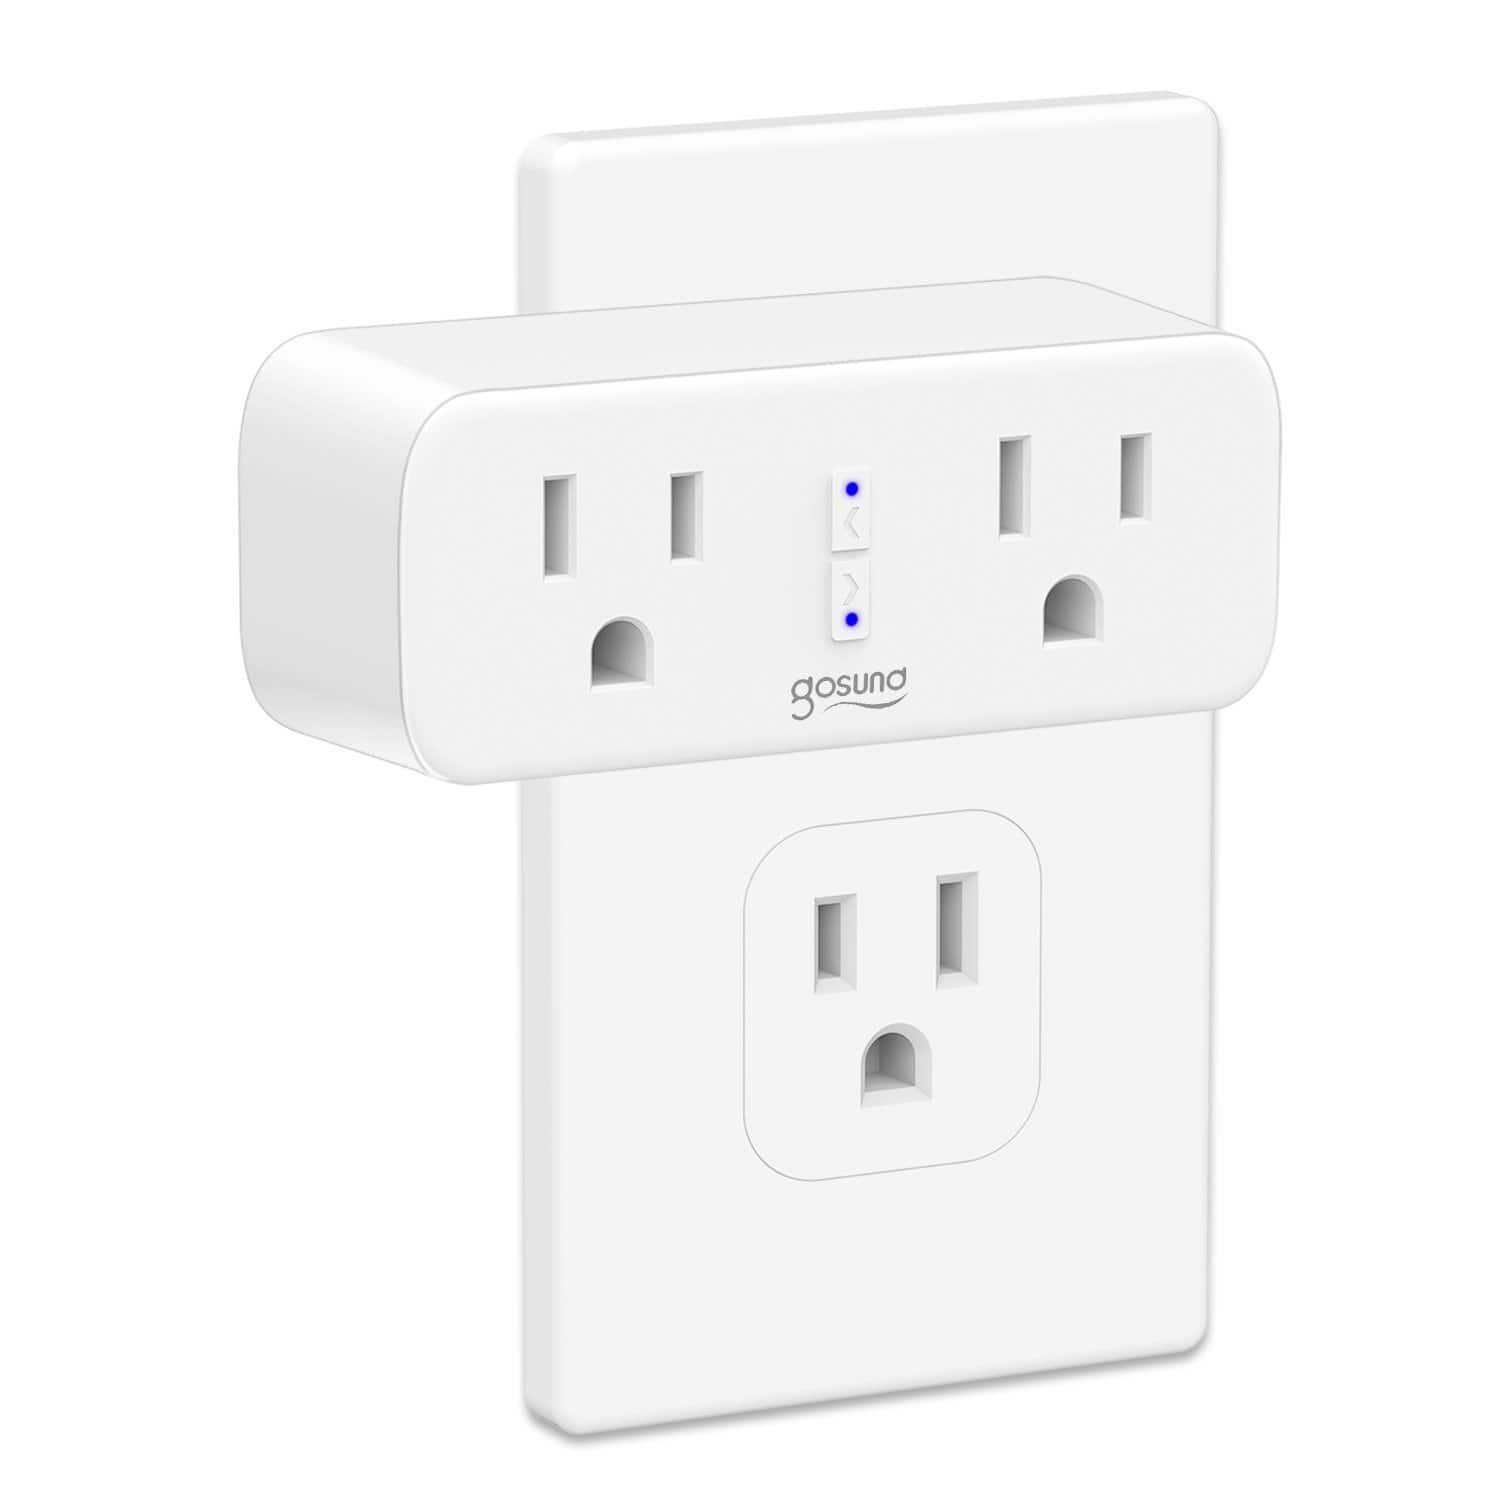 Gosund 2-in-1 (2 plugs) WiFi Smart Plugs w/ Power Tracking, Voice controls (Alexa, Google Home) $16.49 or 2-pack $30 + free s/h $16.5